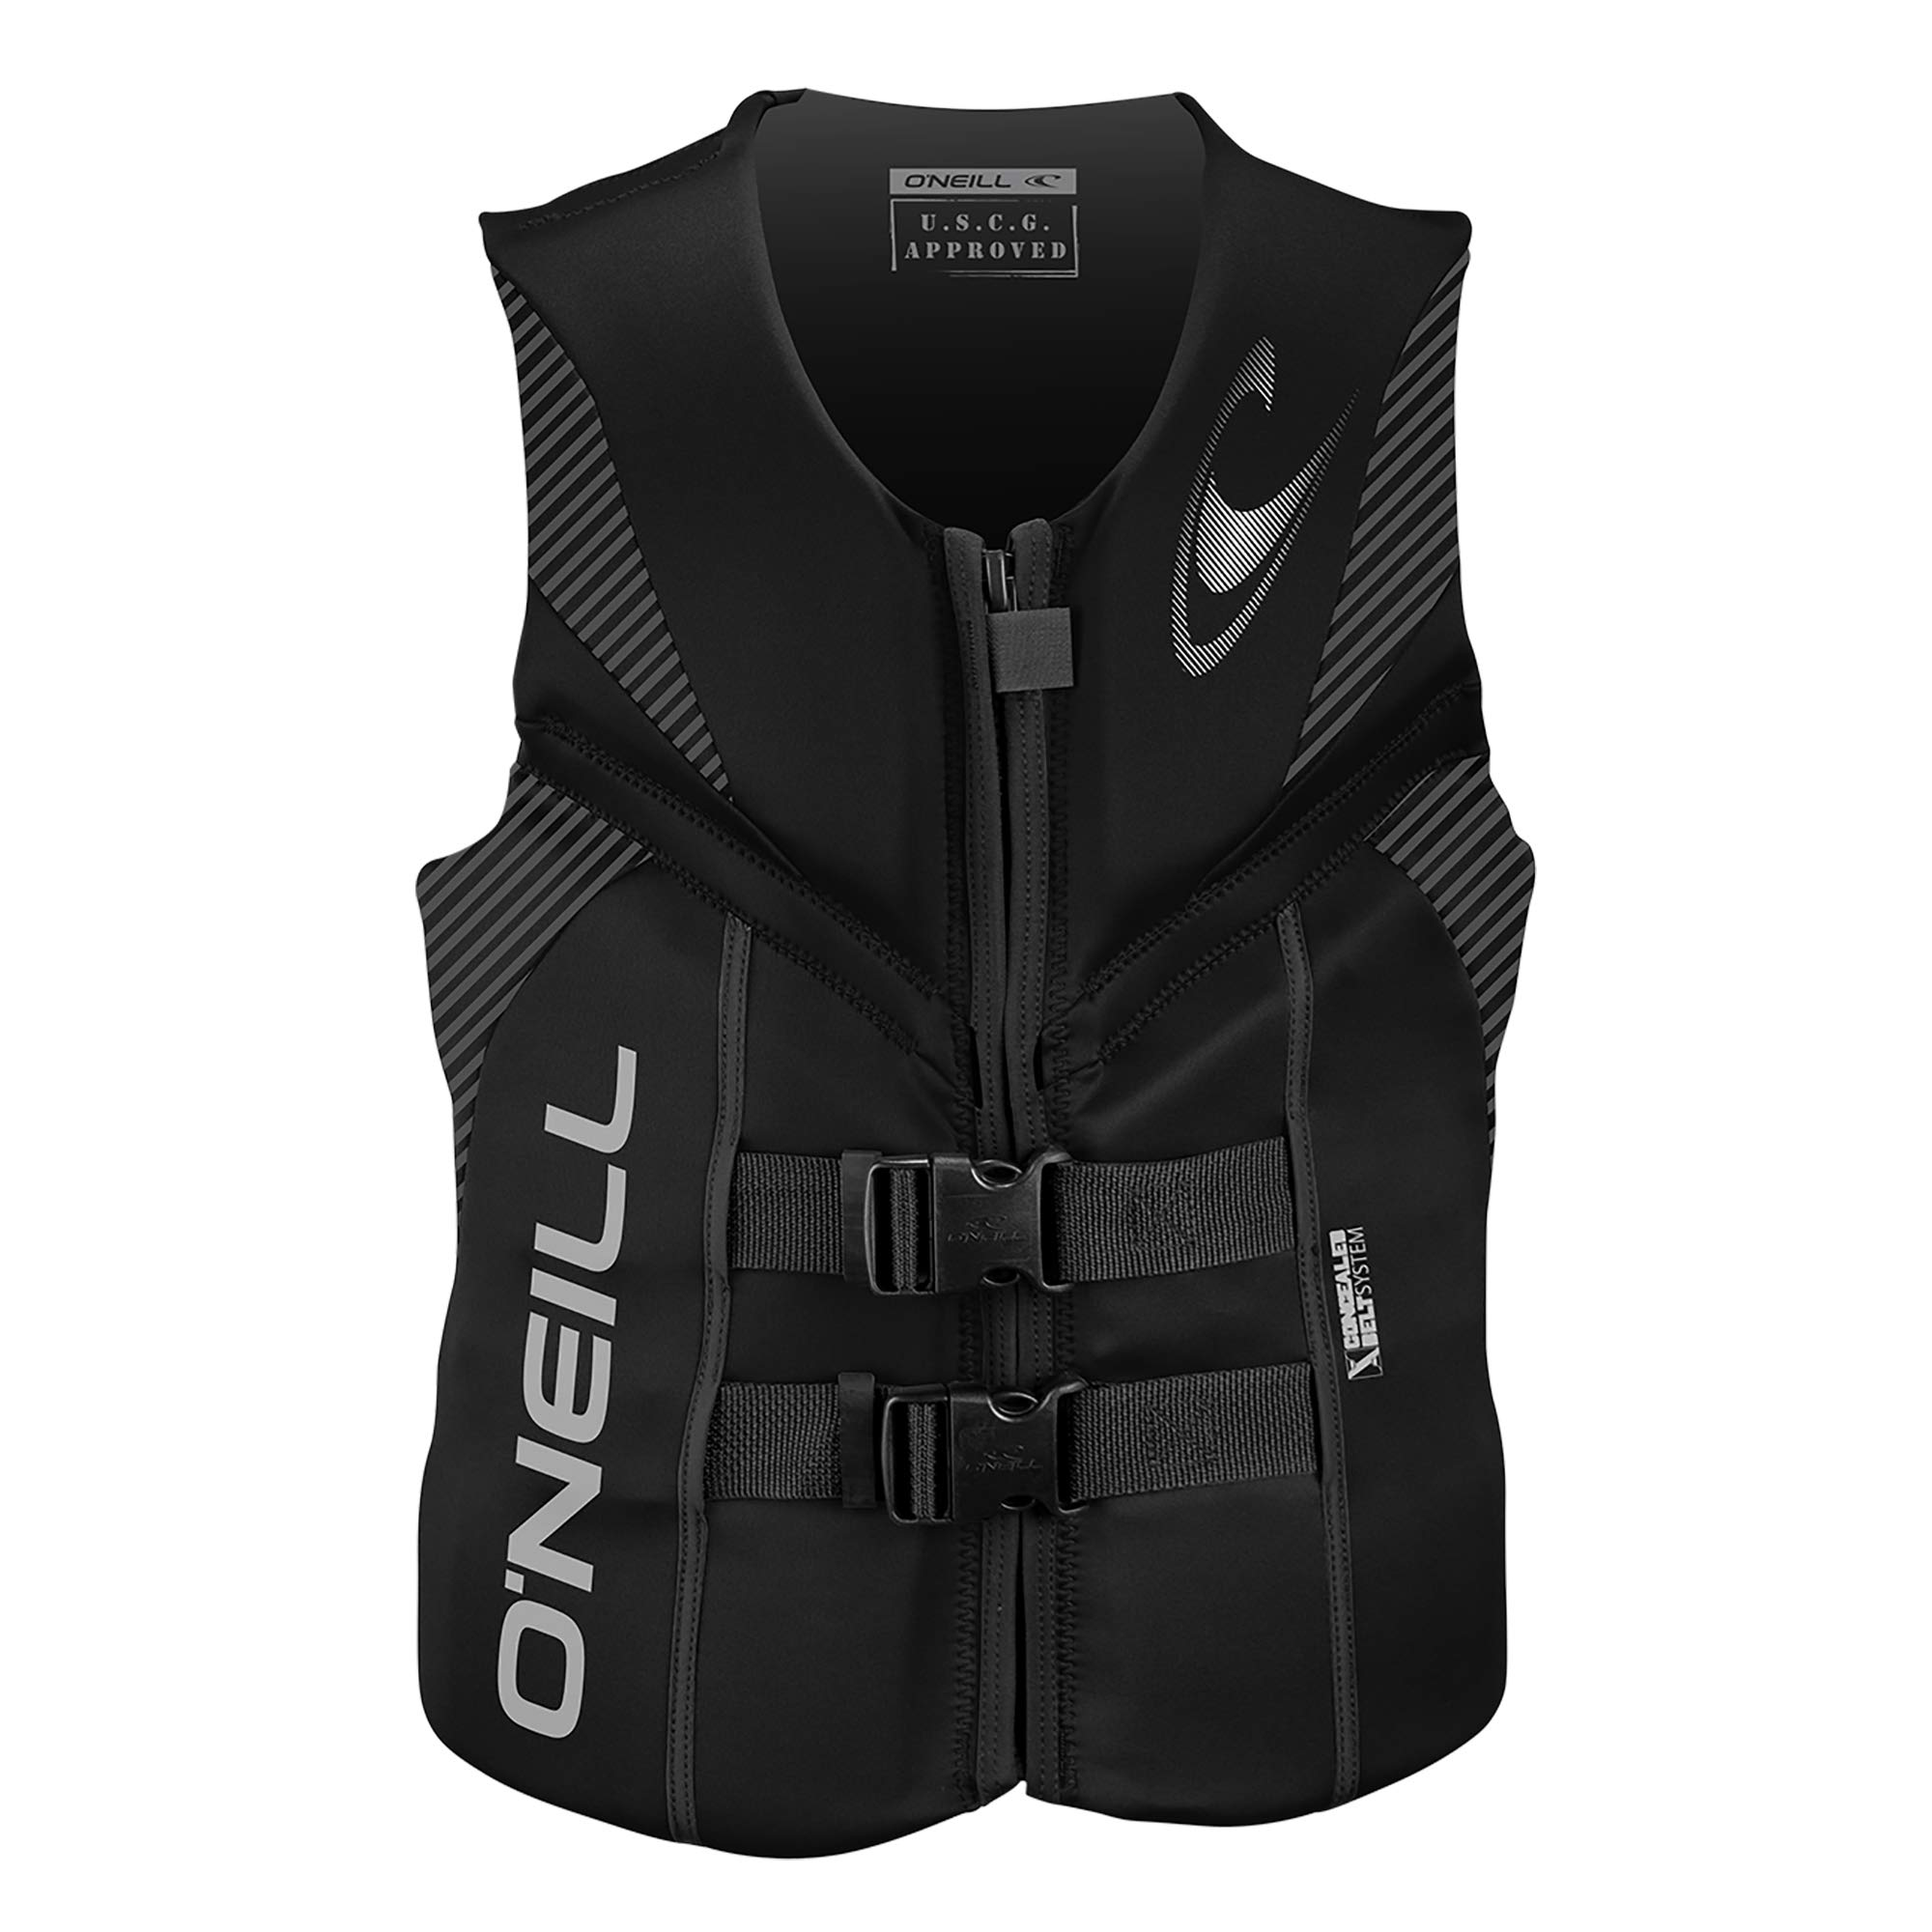 O'Neill  Men's Reactor USCG Life Vest, Black/Black/Black,Small by O'Neill Wetsuits